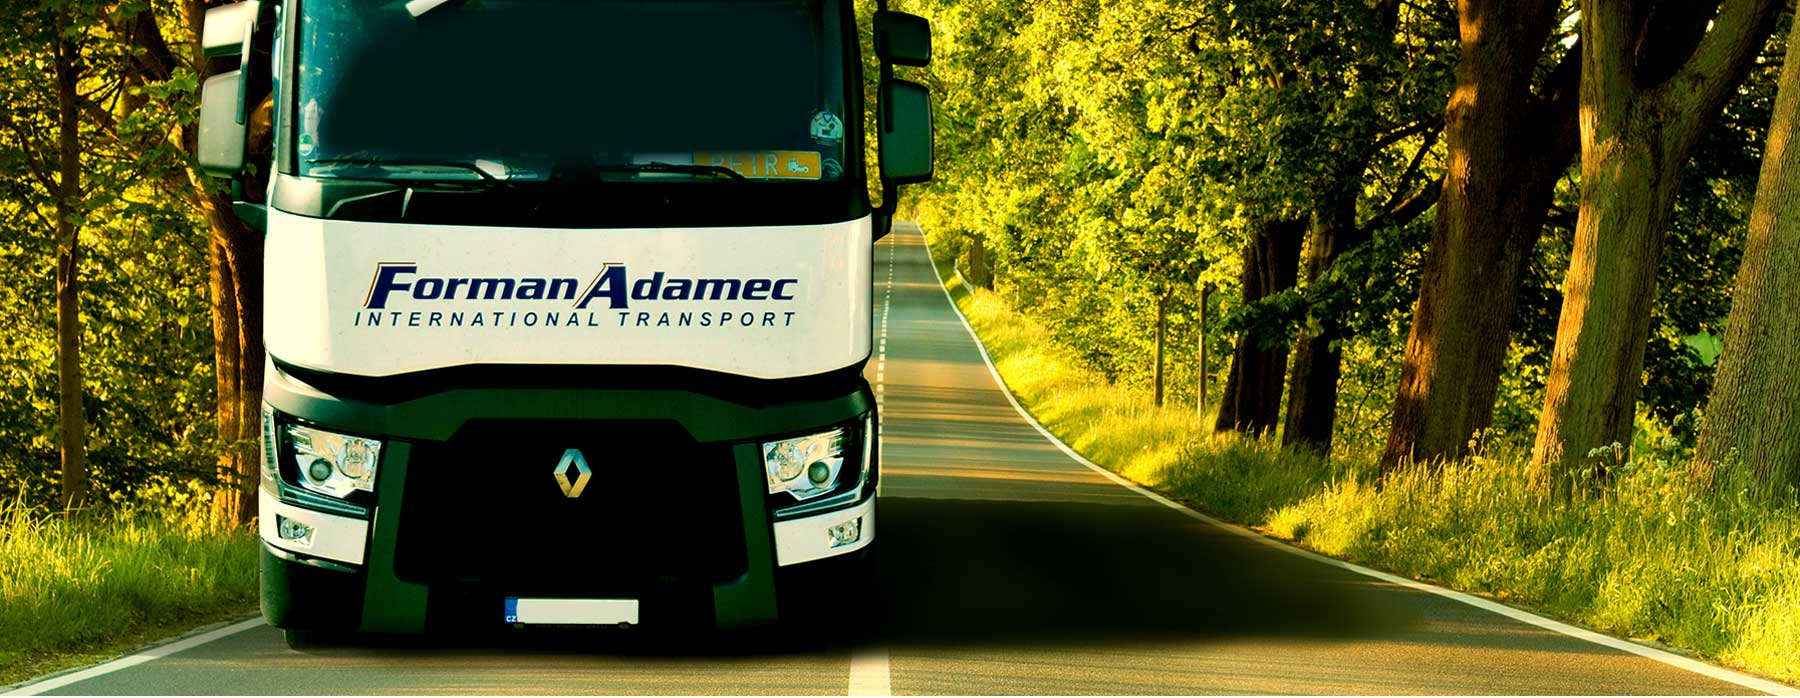 Forman Adamec - International Transport